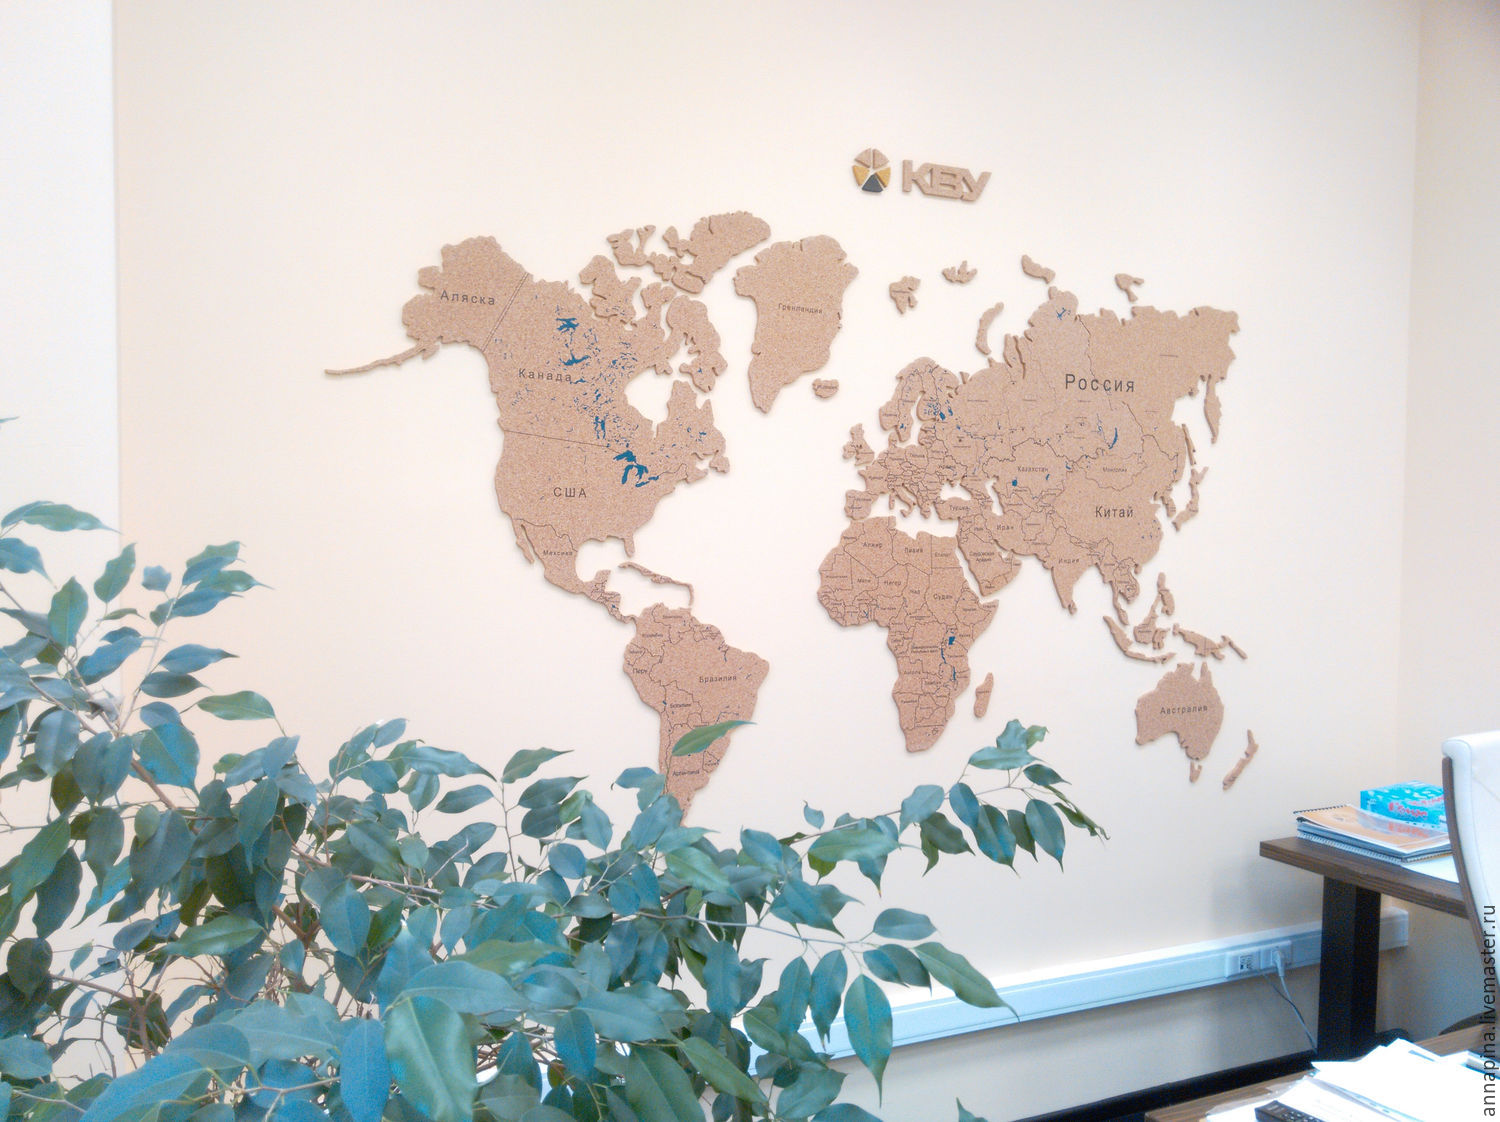 Coarkboard world map shop online on livemaster with shipping coarkboard world map anna pina design online shopping on my livemaster gumiabroncs Images